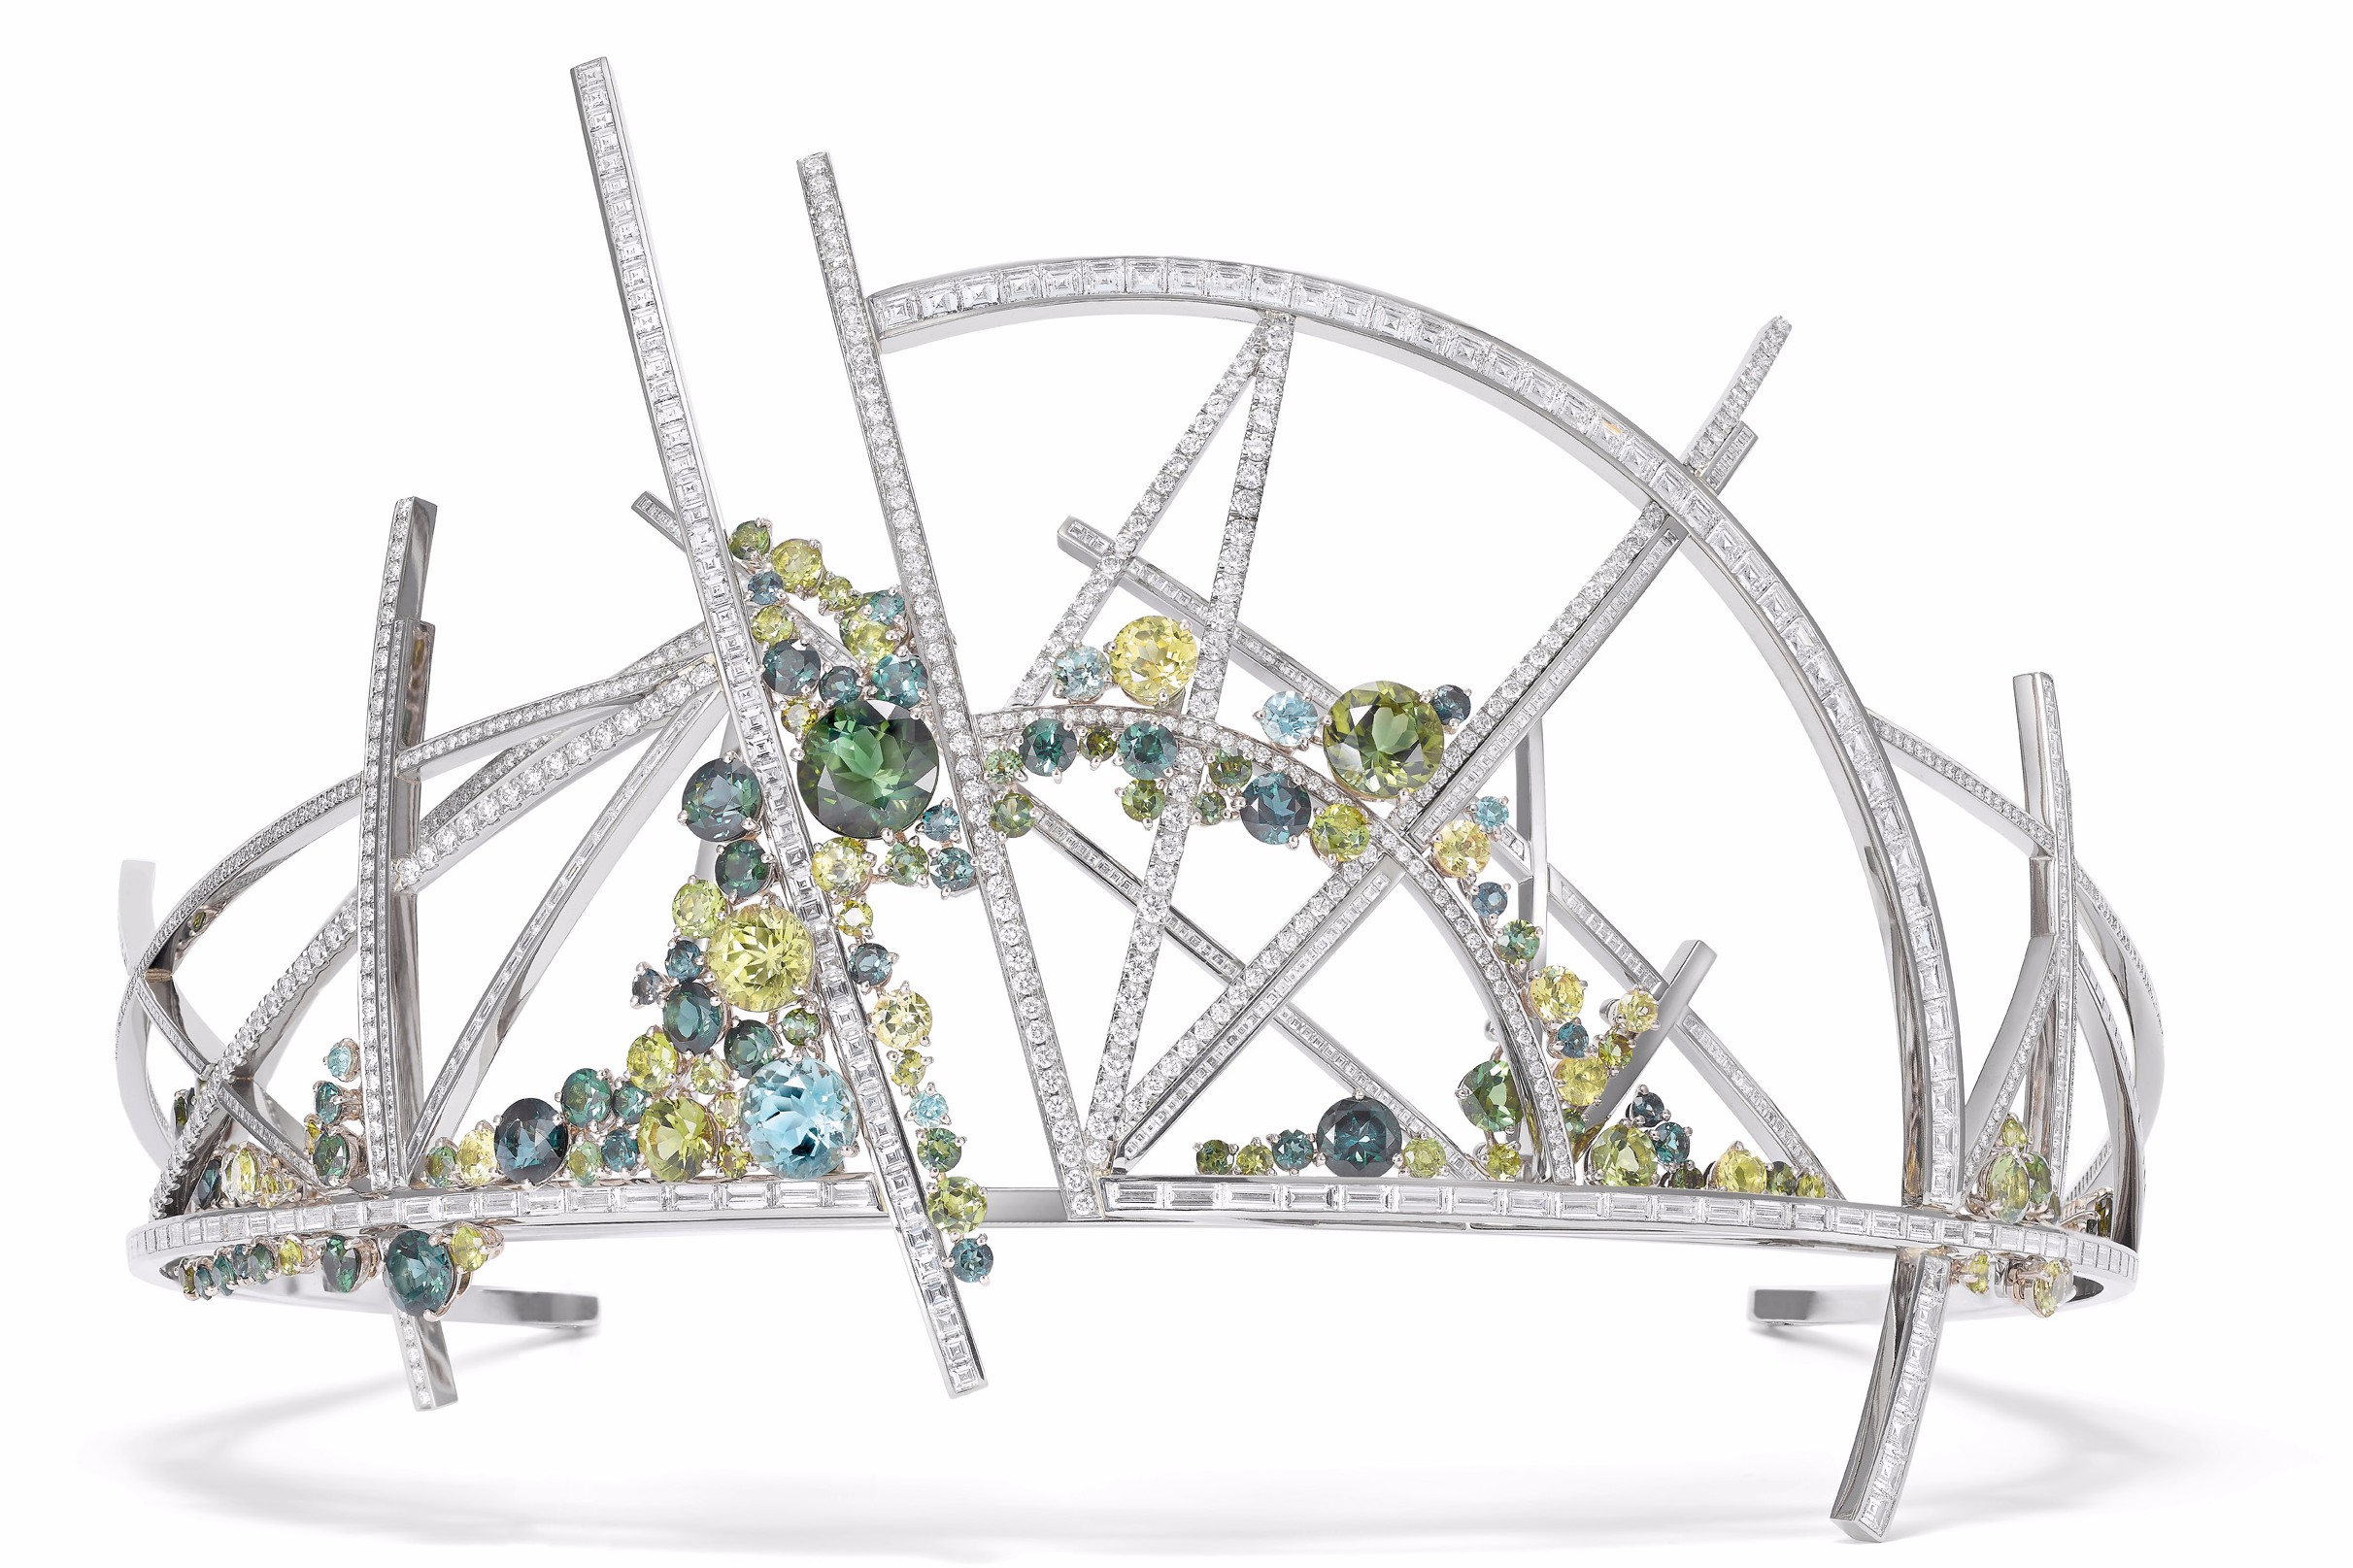 Chaumet collaborates with Central St Martins